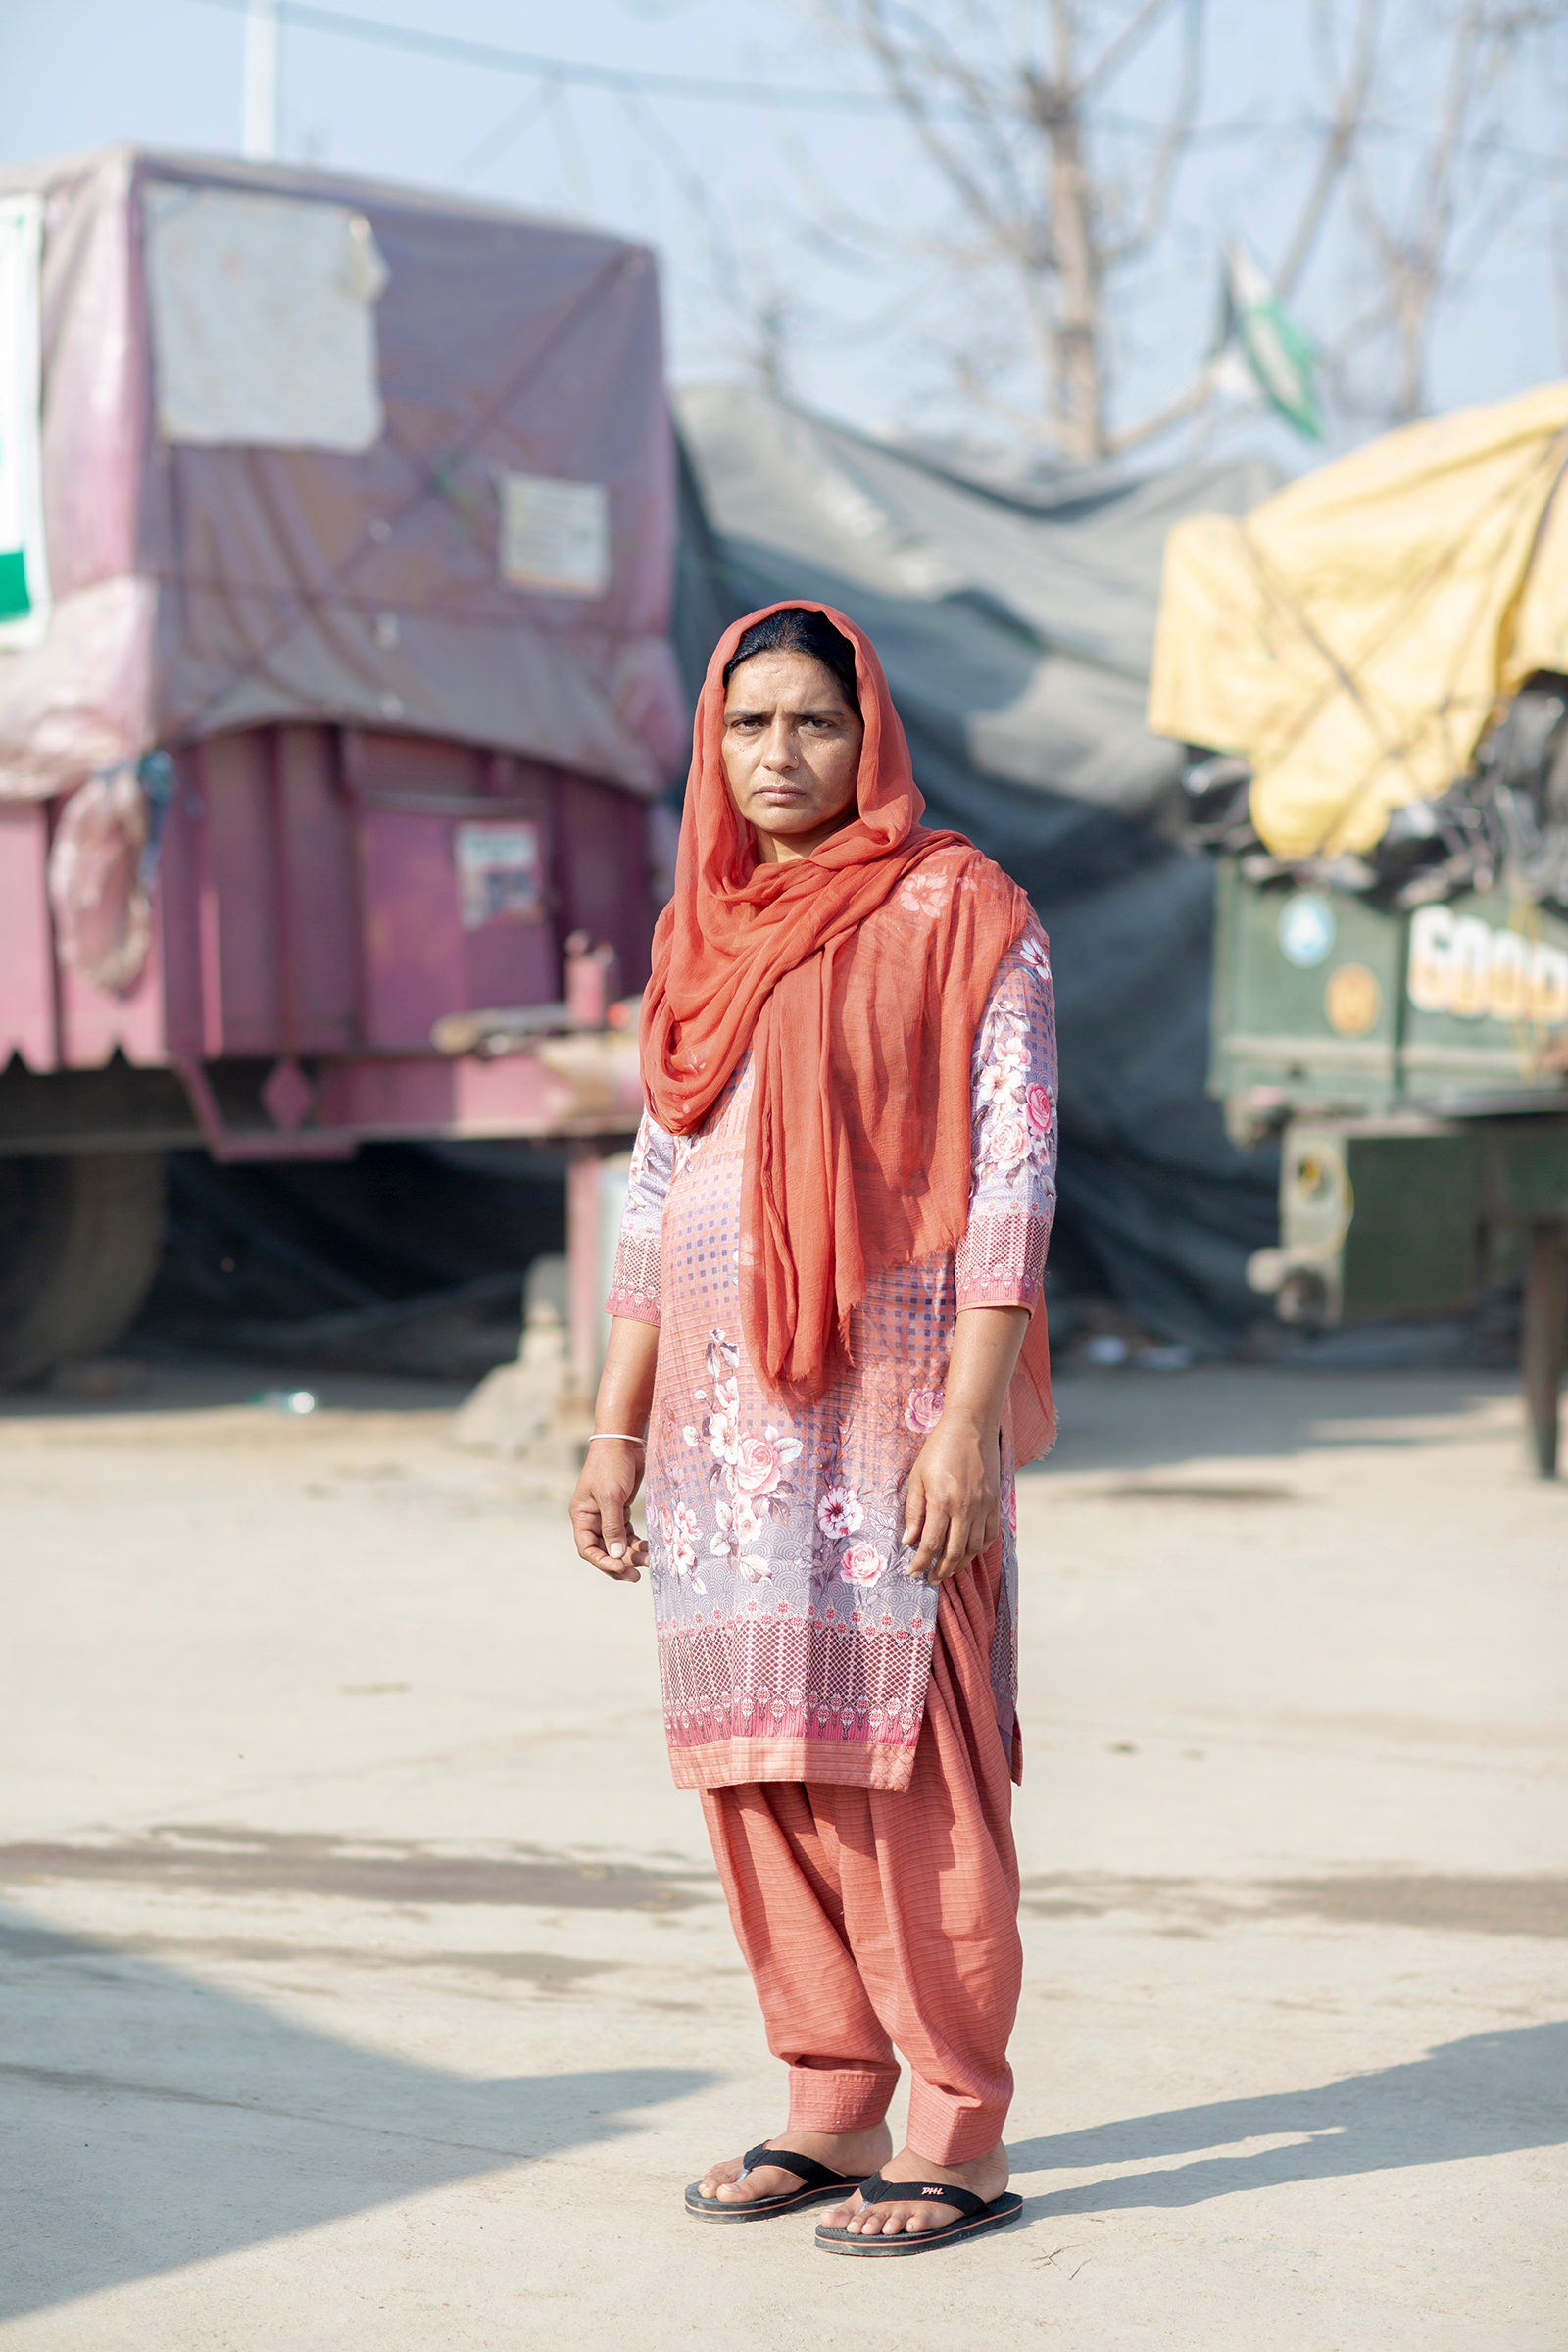 """Amandeep Kaur, 41, from Talwandi, Punjab, is employed as a community health worker and as a farmer to support her two daughters. Her husband died by suicide five years ago; because she did not know her rights, she didn't receive government compensation given to families of farmers who die by suicide. The new laws, she says, """"will kill us, will destroy what little we have."""""""